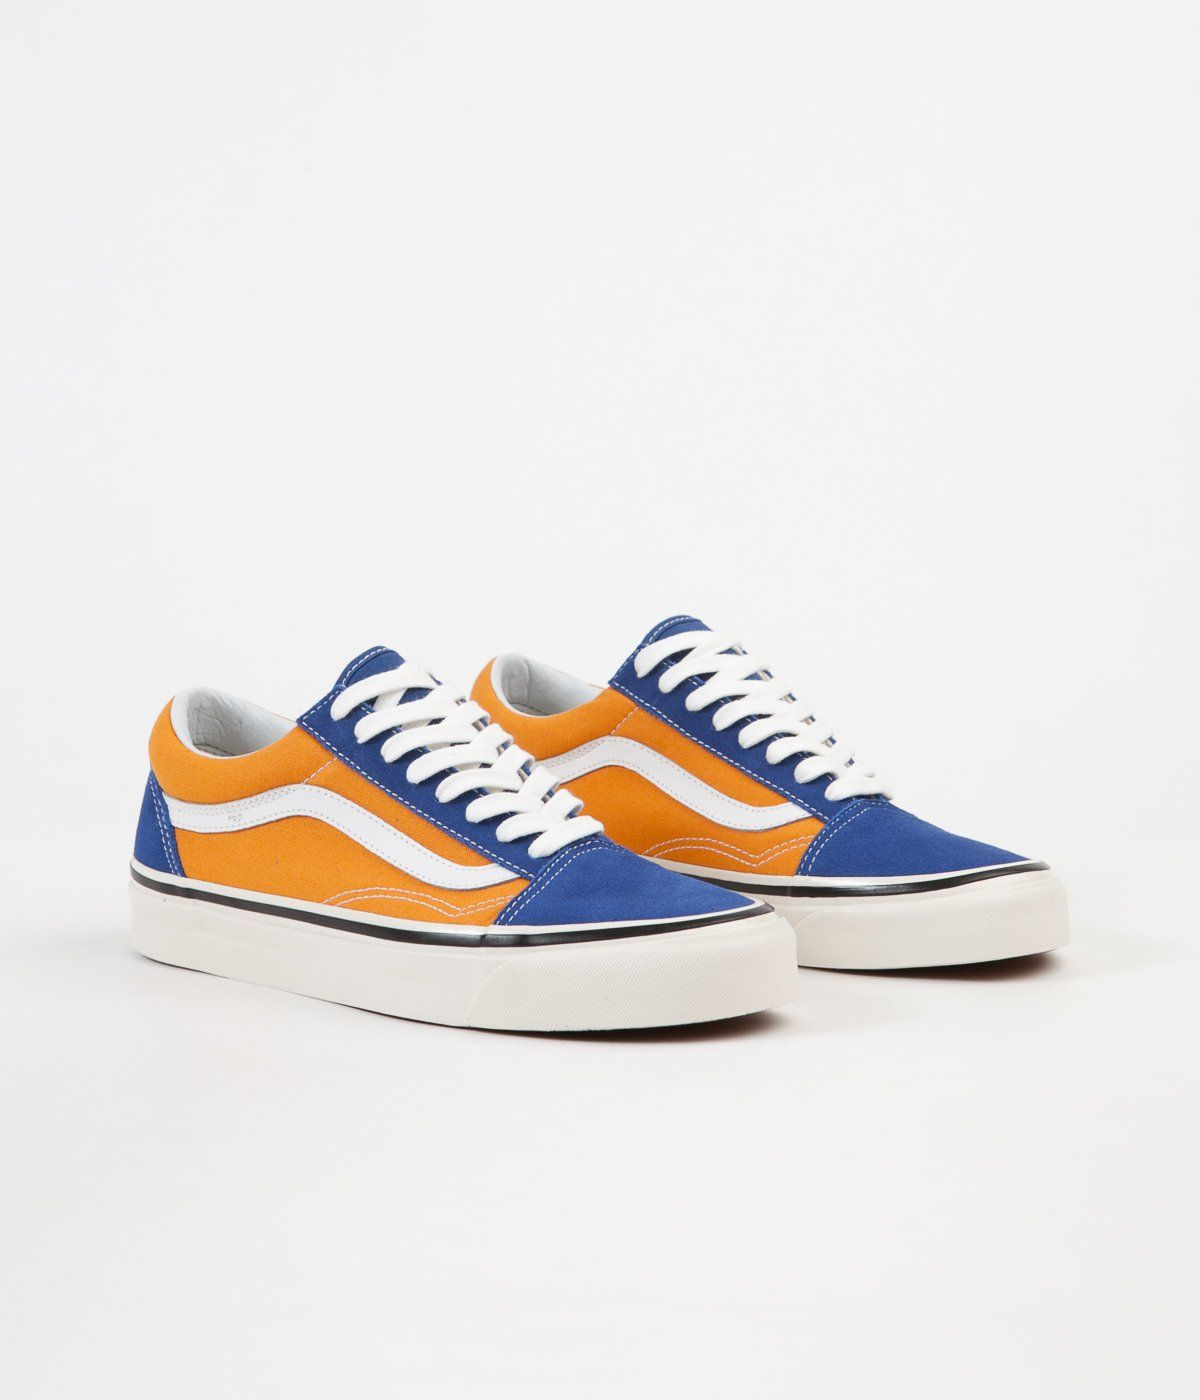 buty vans old skool 36 dx anaheim factory